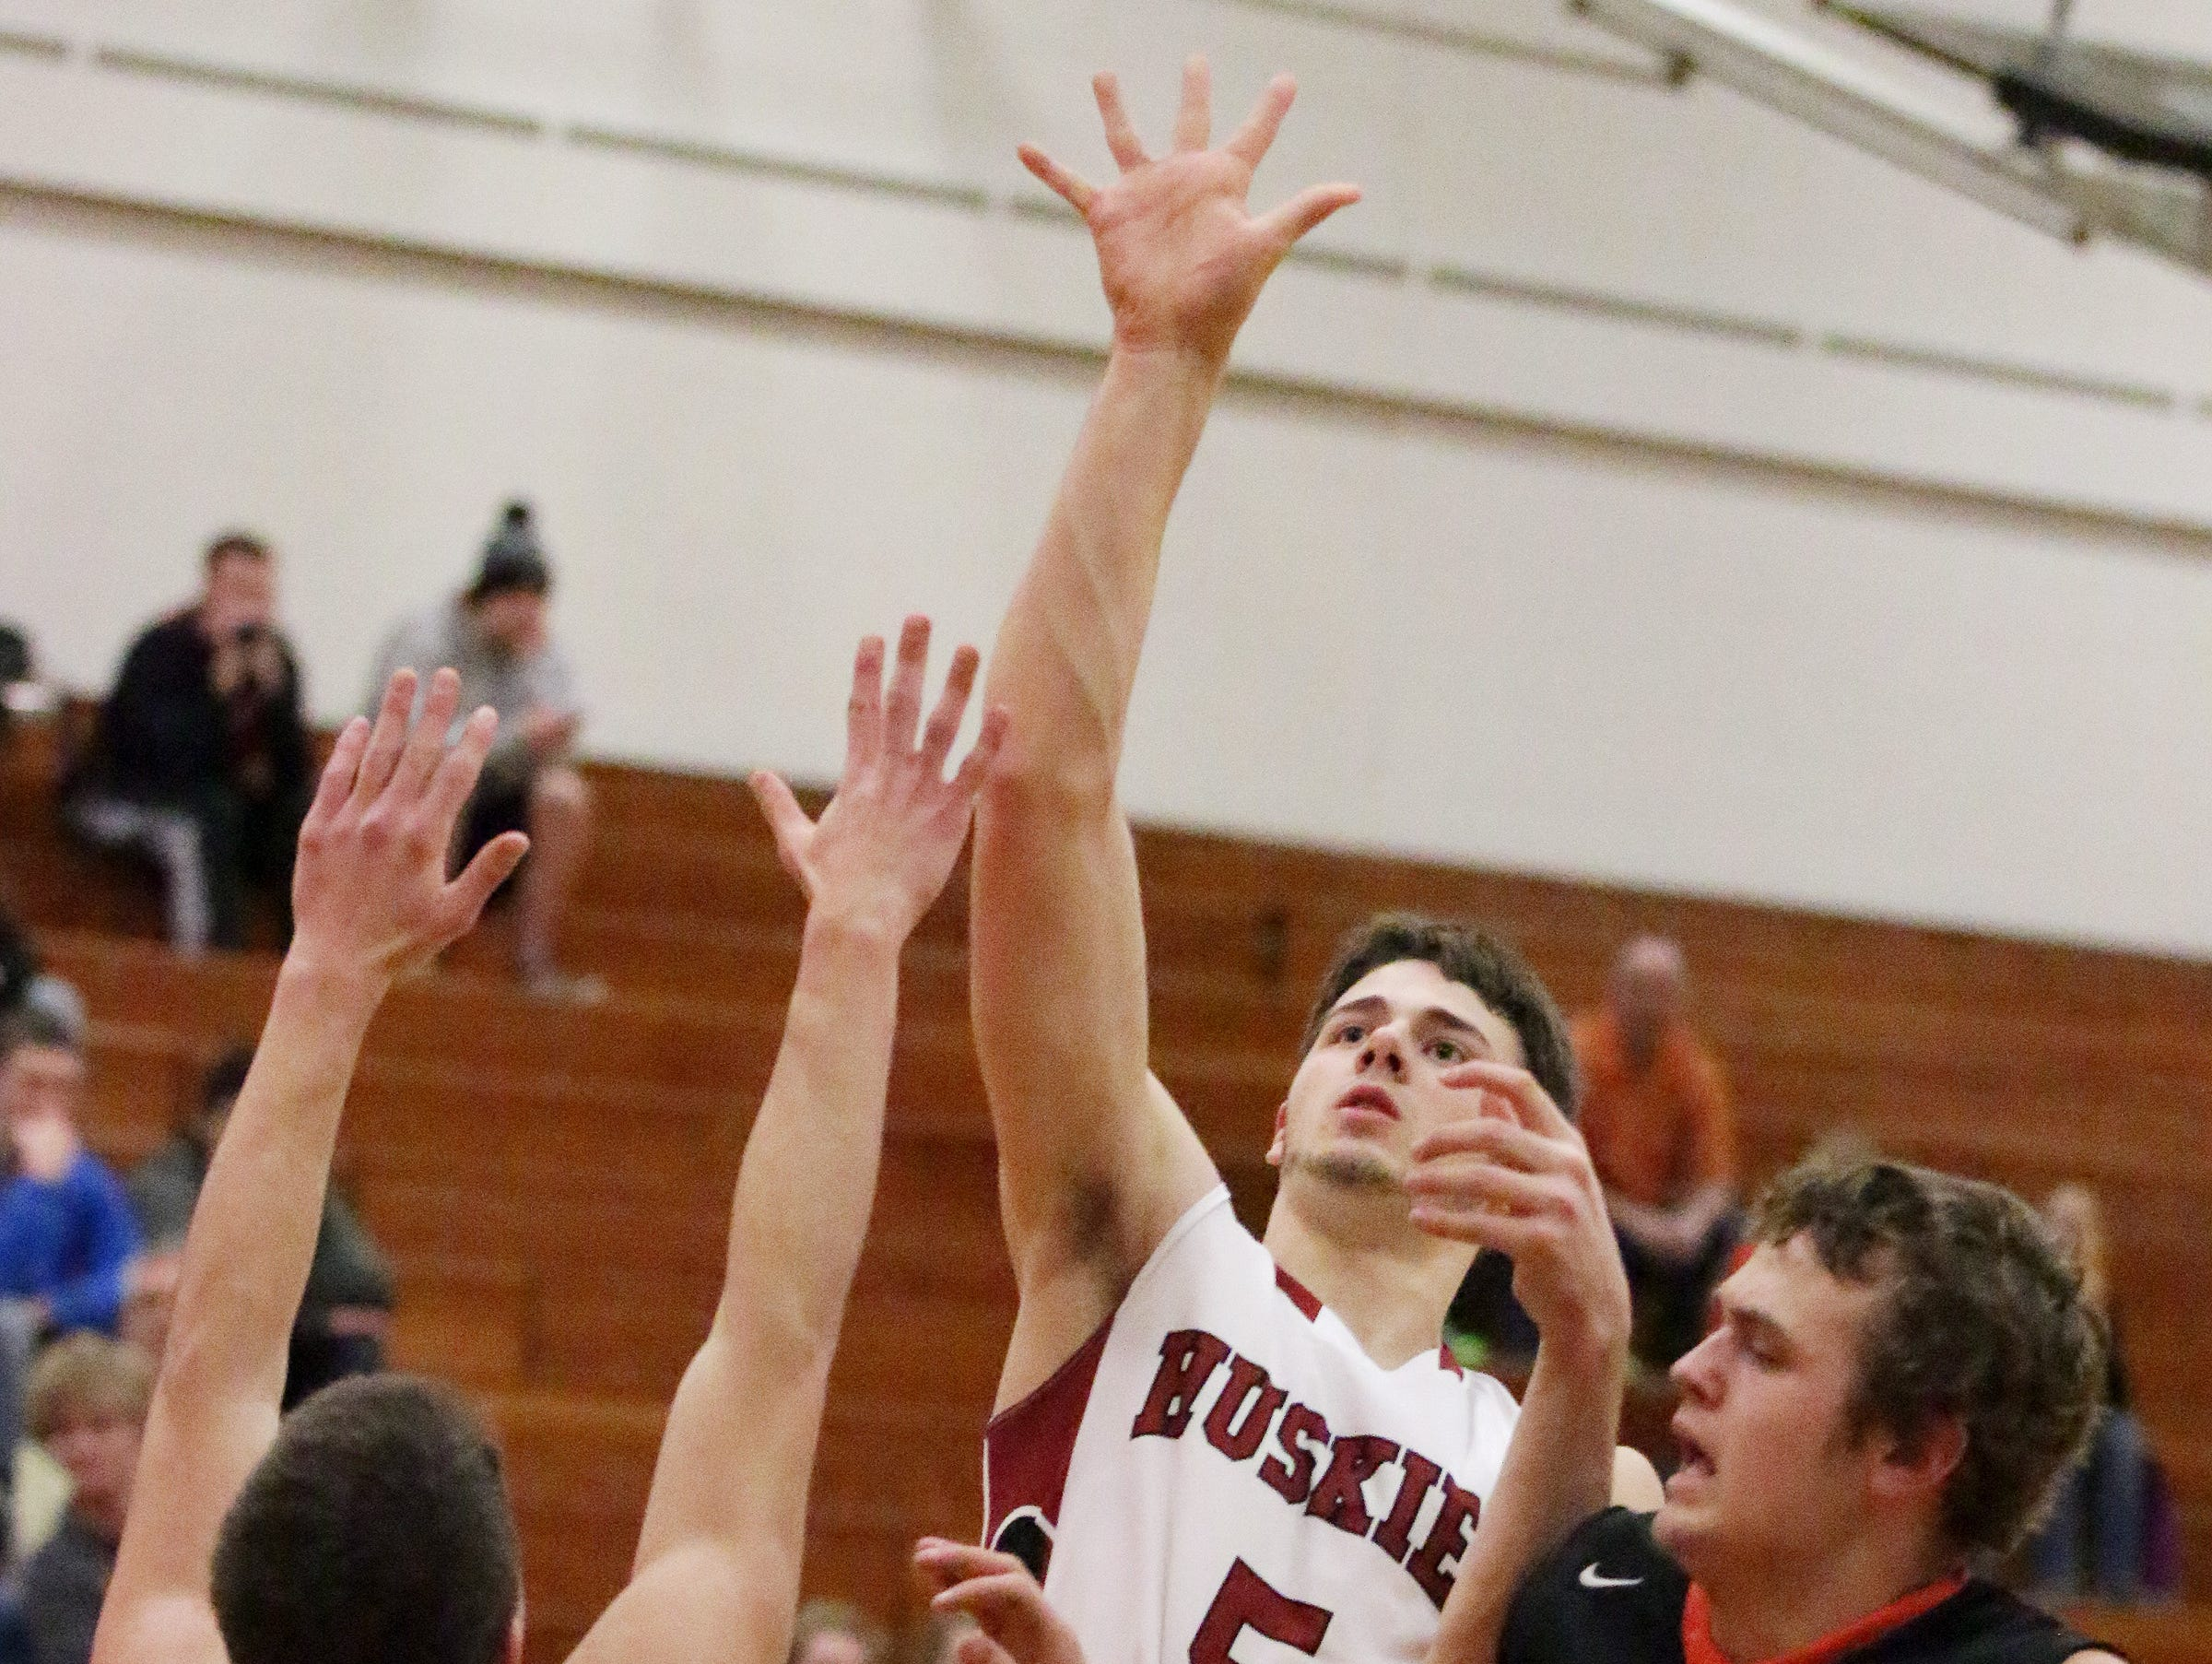 New Holstein's Josh Burg (5) averaged 16.5 points and 6 rebounds per game last season for the Huskies.